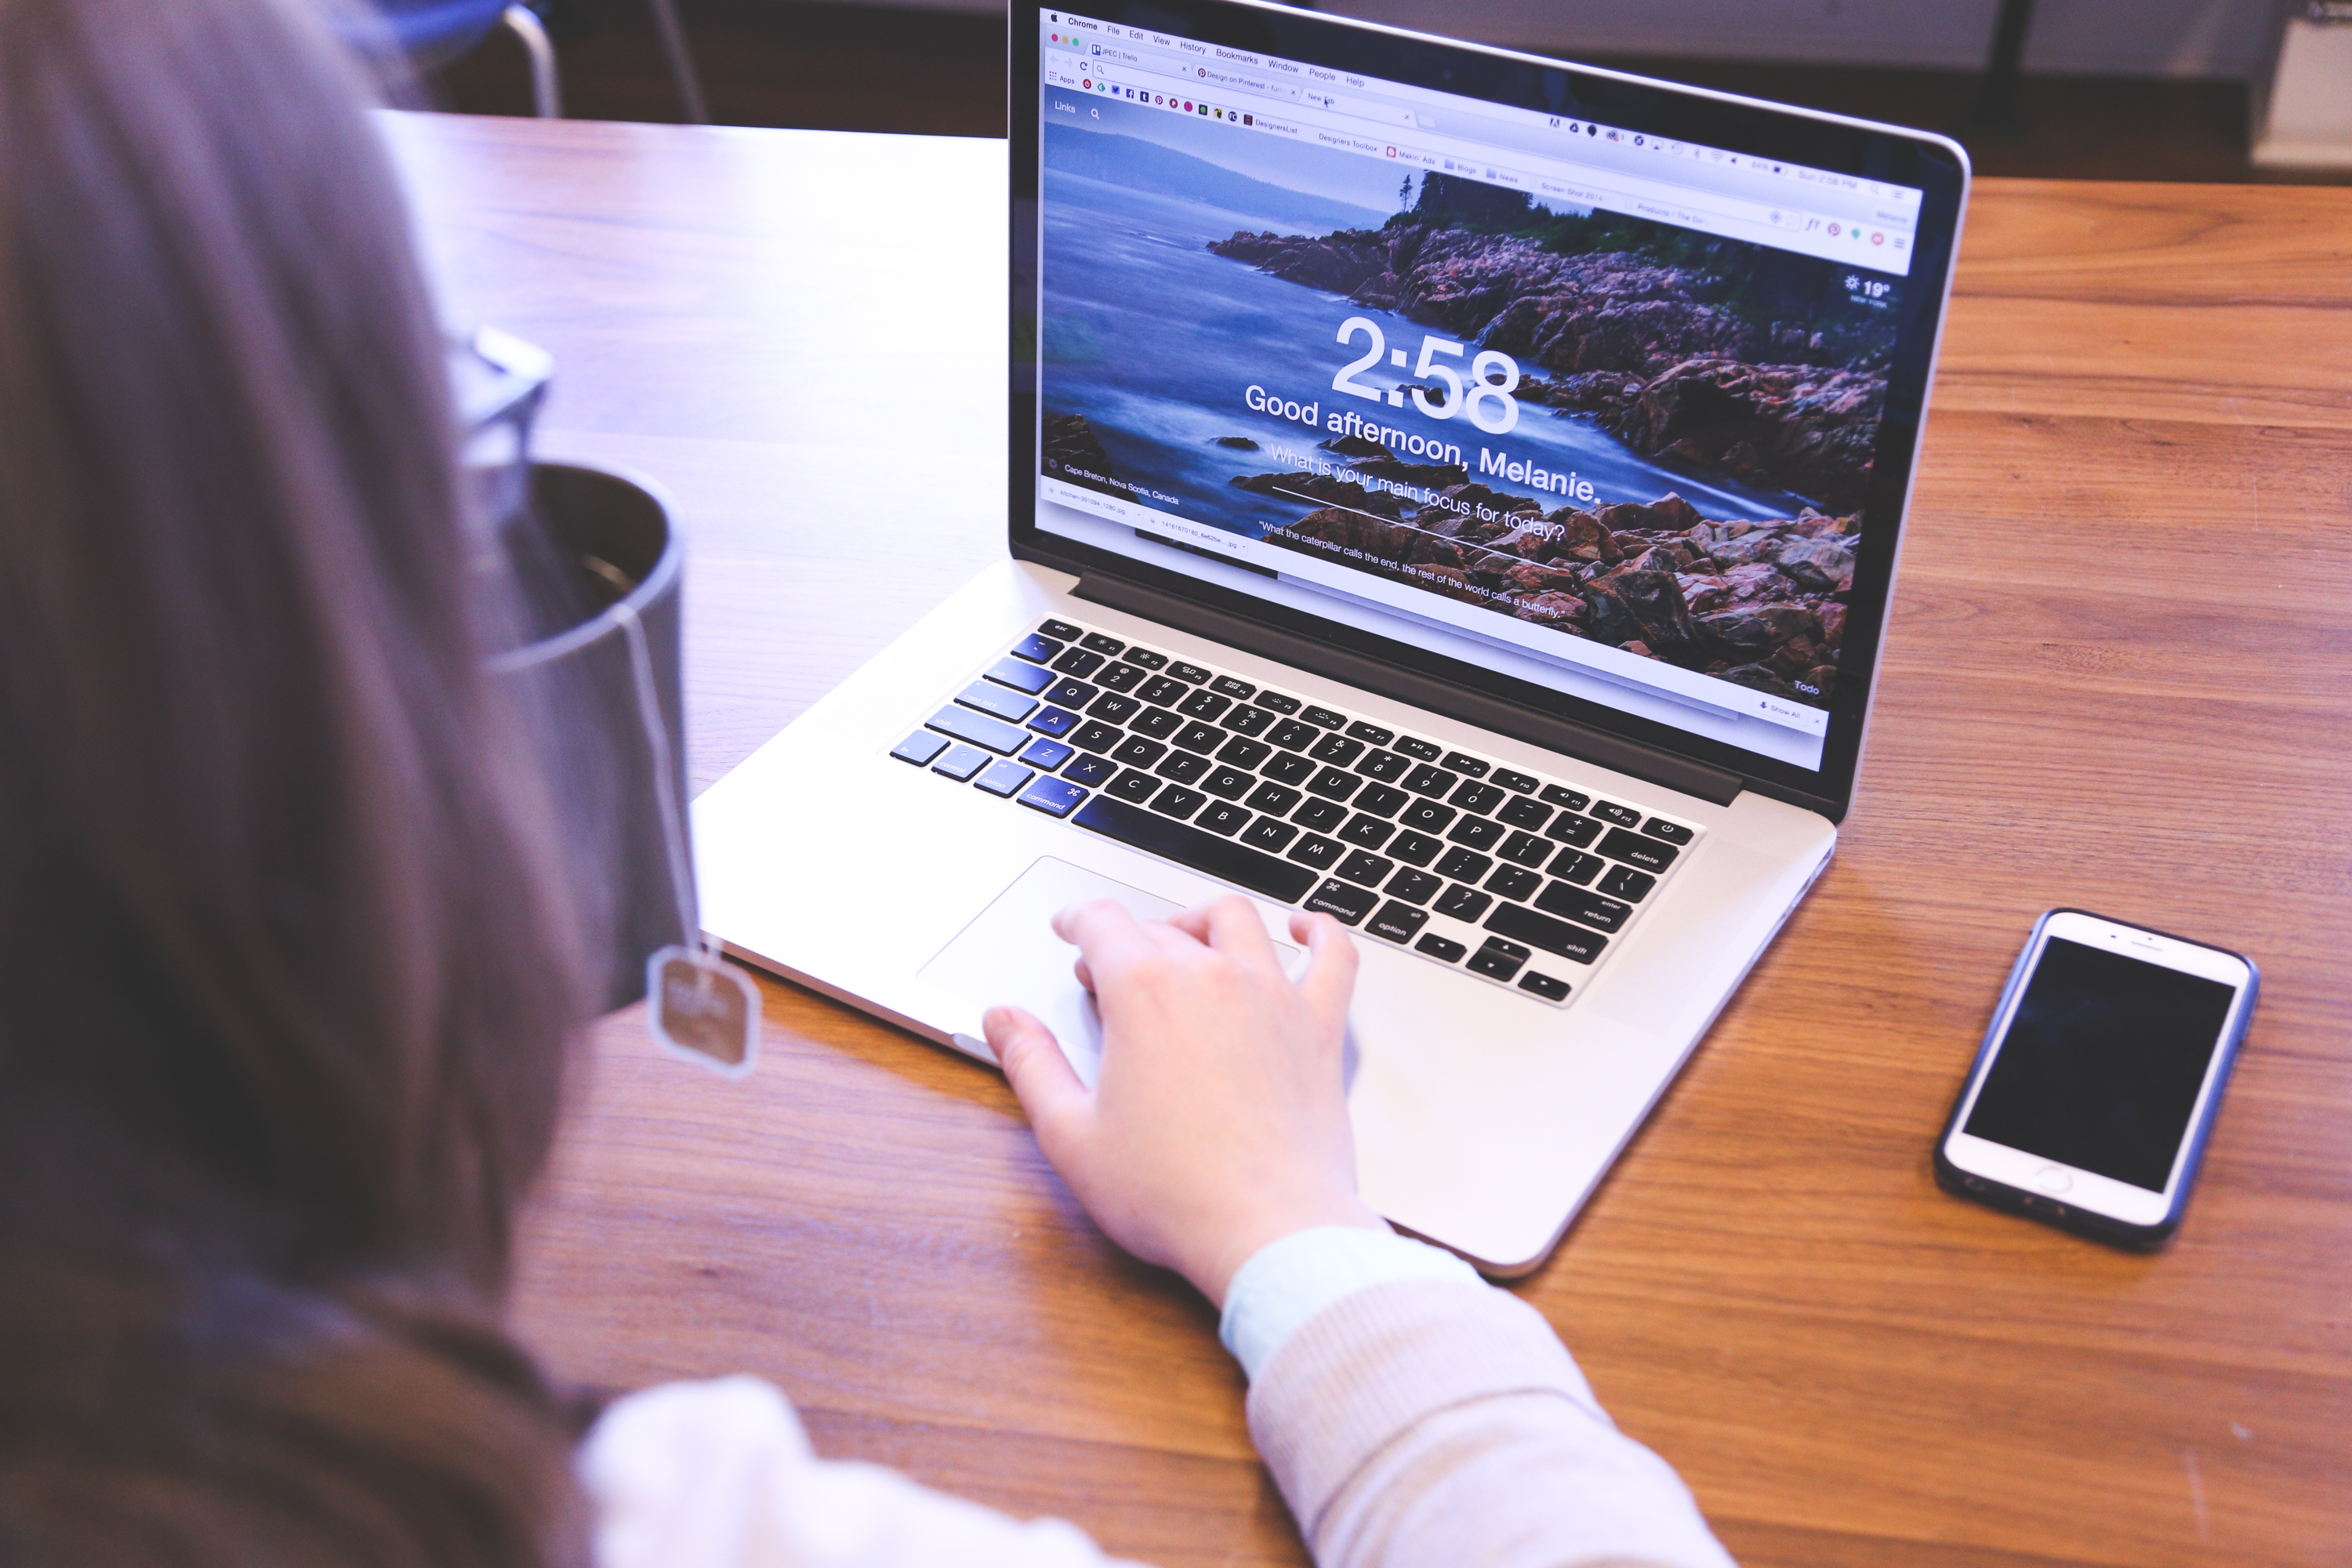 Woman Using Macbook Pro on Table